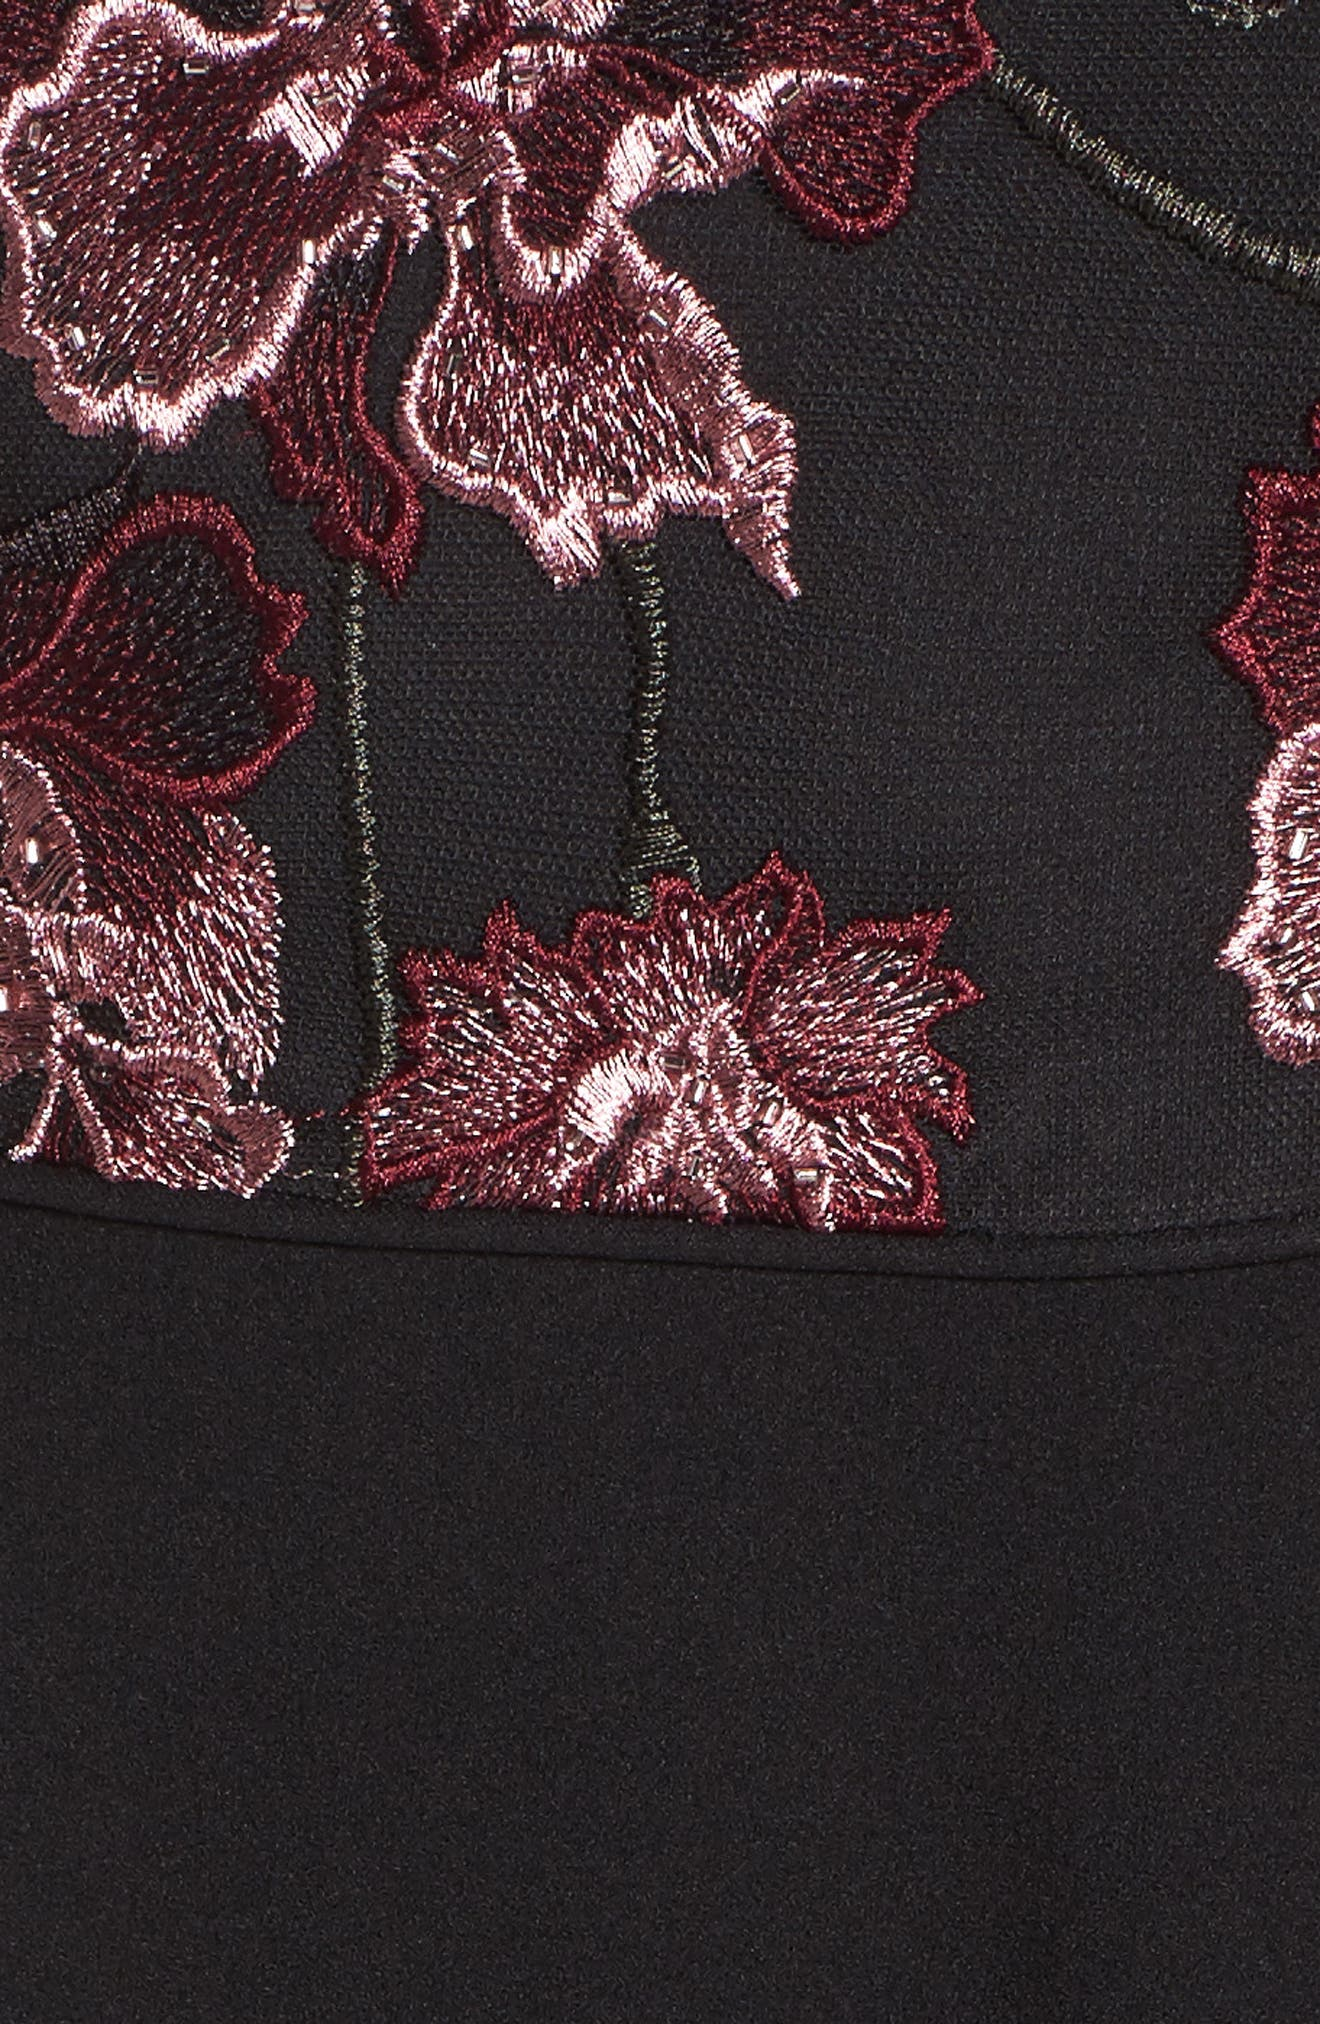 Embroidered Ruffle Gown,                             Alternate thumbnail 5, color,                             Cabernet Multi